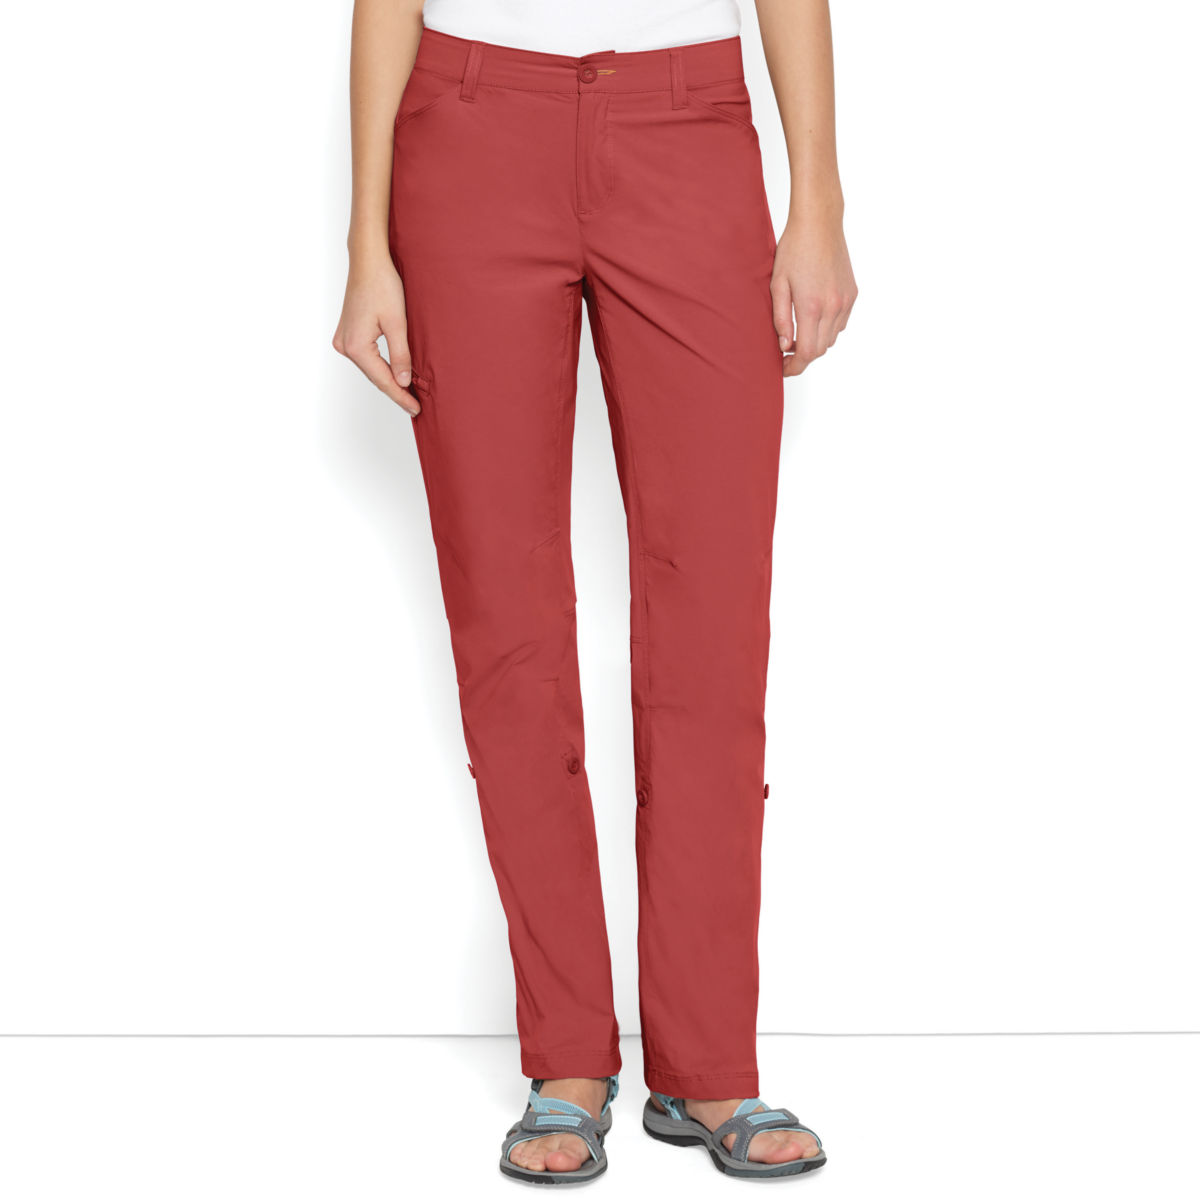 Women's Jackson Quick-Dry Stretch Pants - SPICEimage number 0